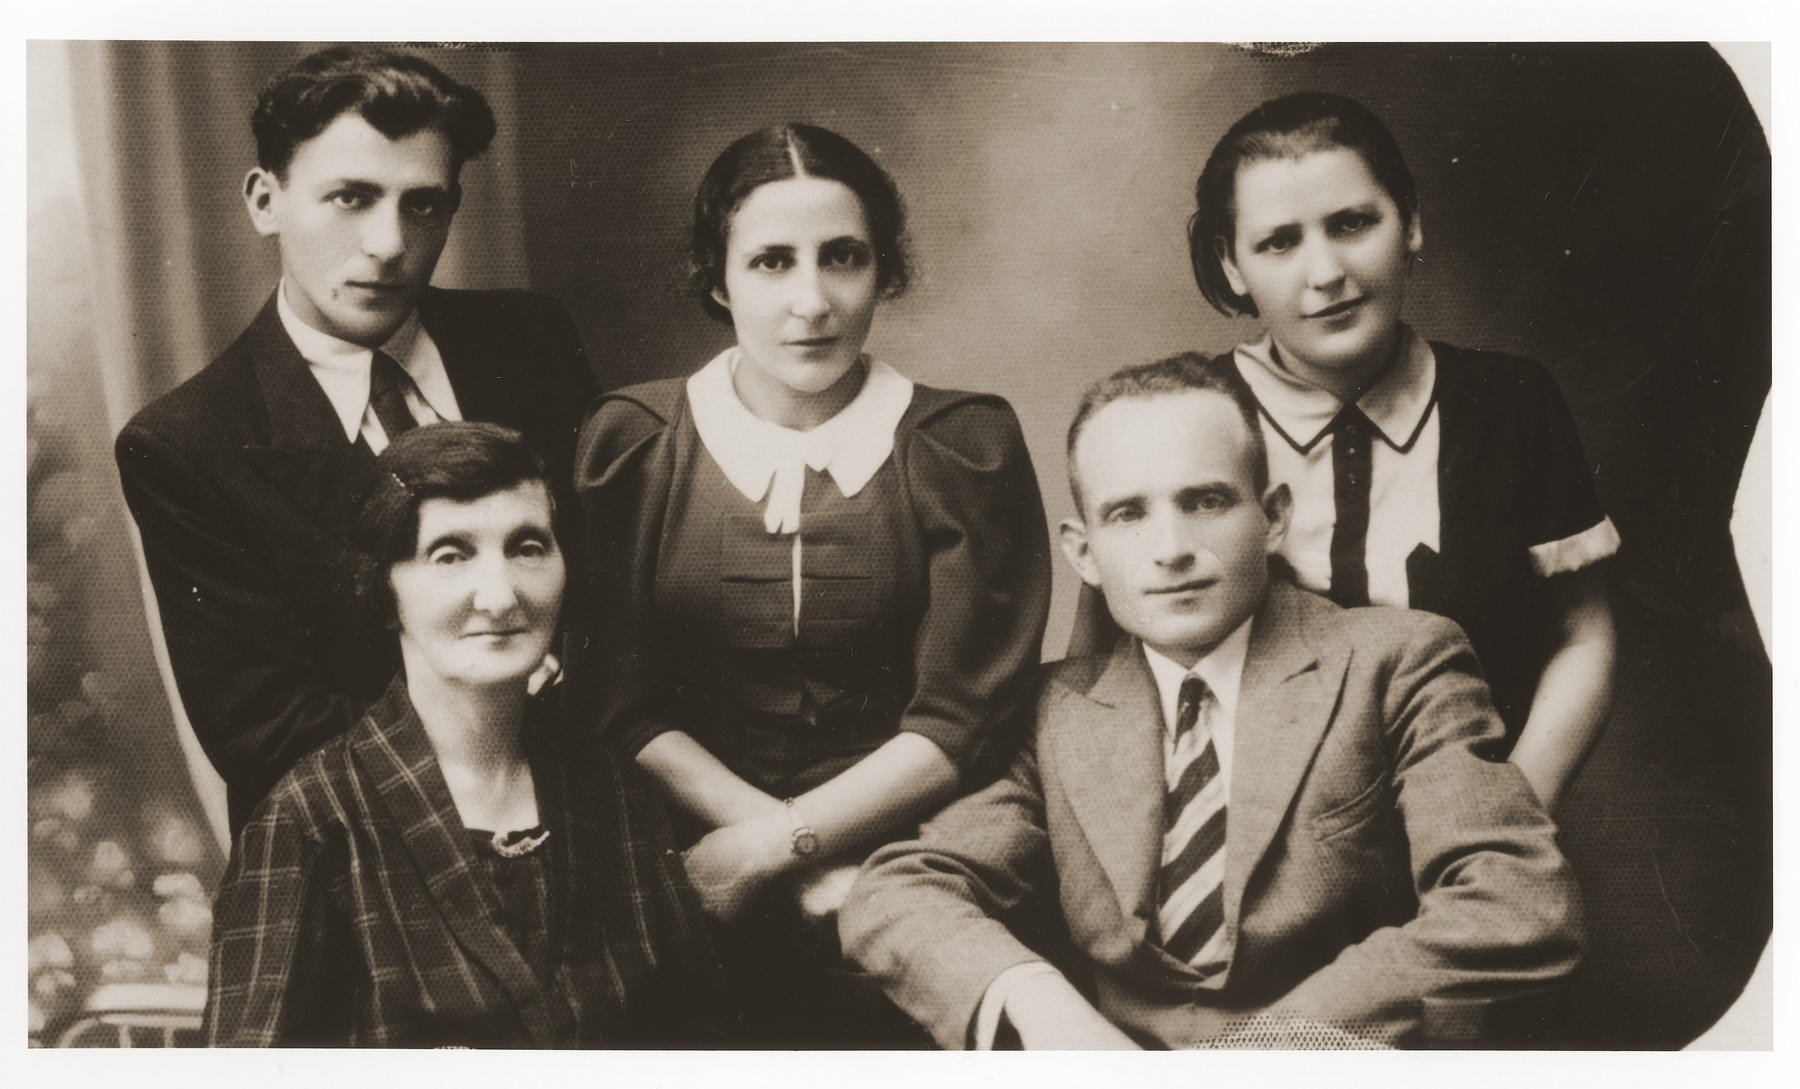 Studio portrait of members of the Zygielbojm family in Chelm.  Pictured in the back, from left to right, are: Reuven; Chana and Chava Zygielbojm.  Seated in front are: Henia Zygielbojm and Isaac Friedland, Chava's husband.